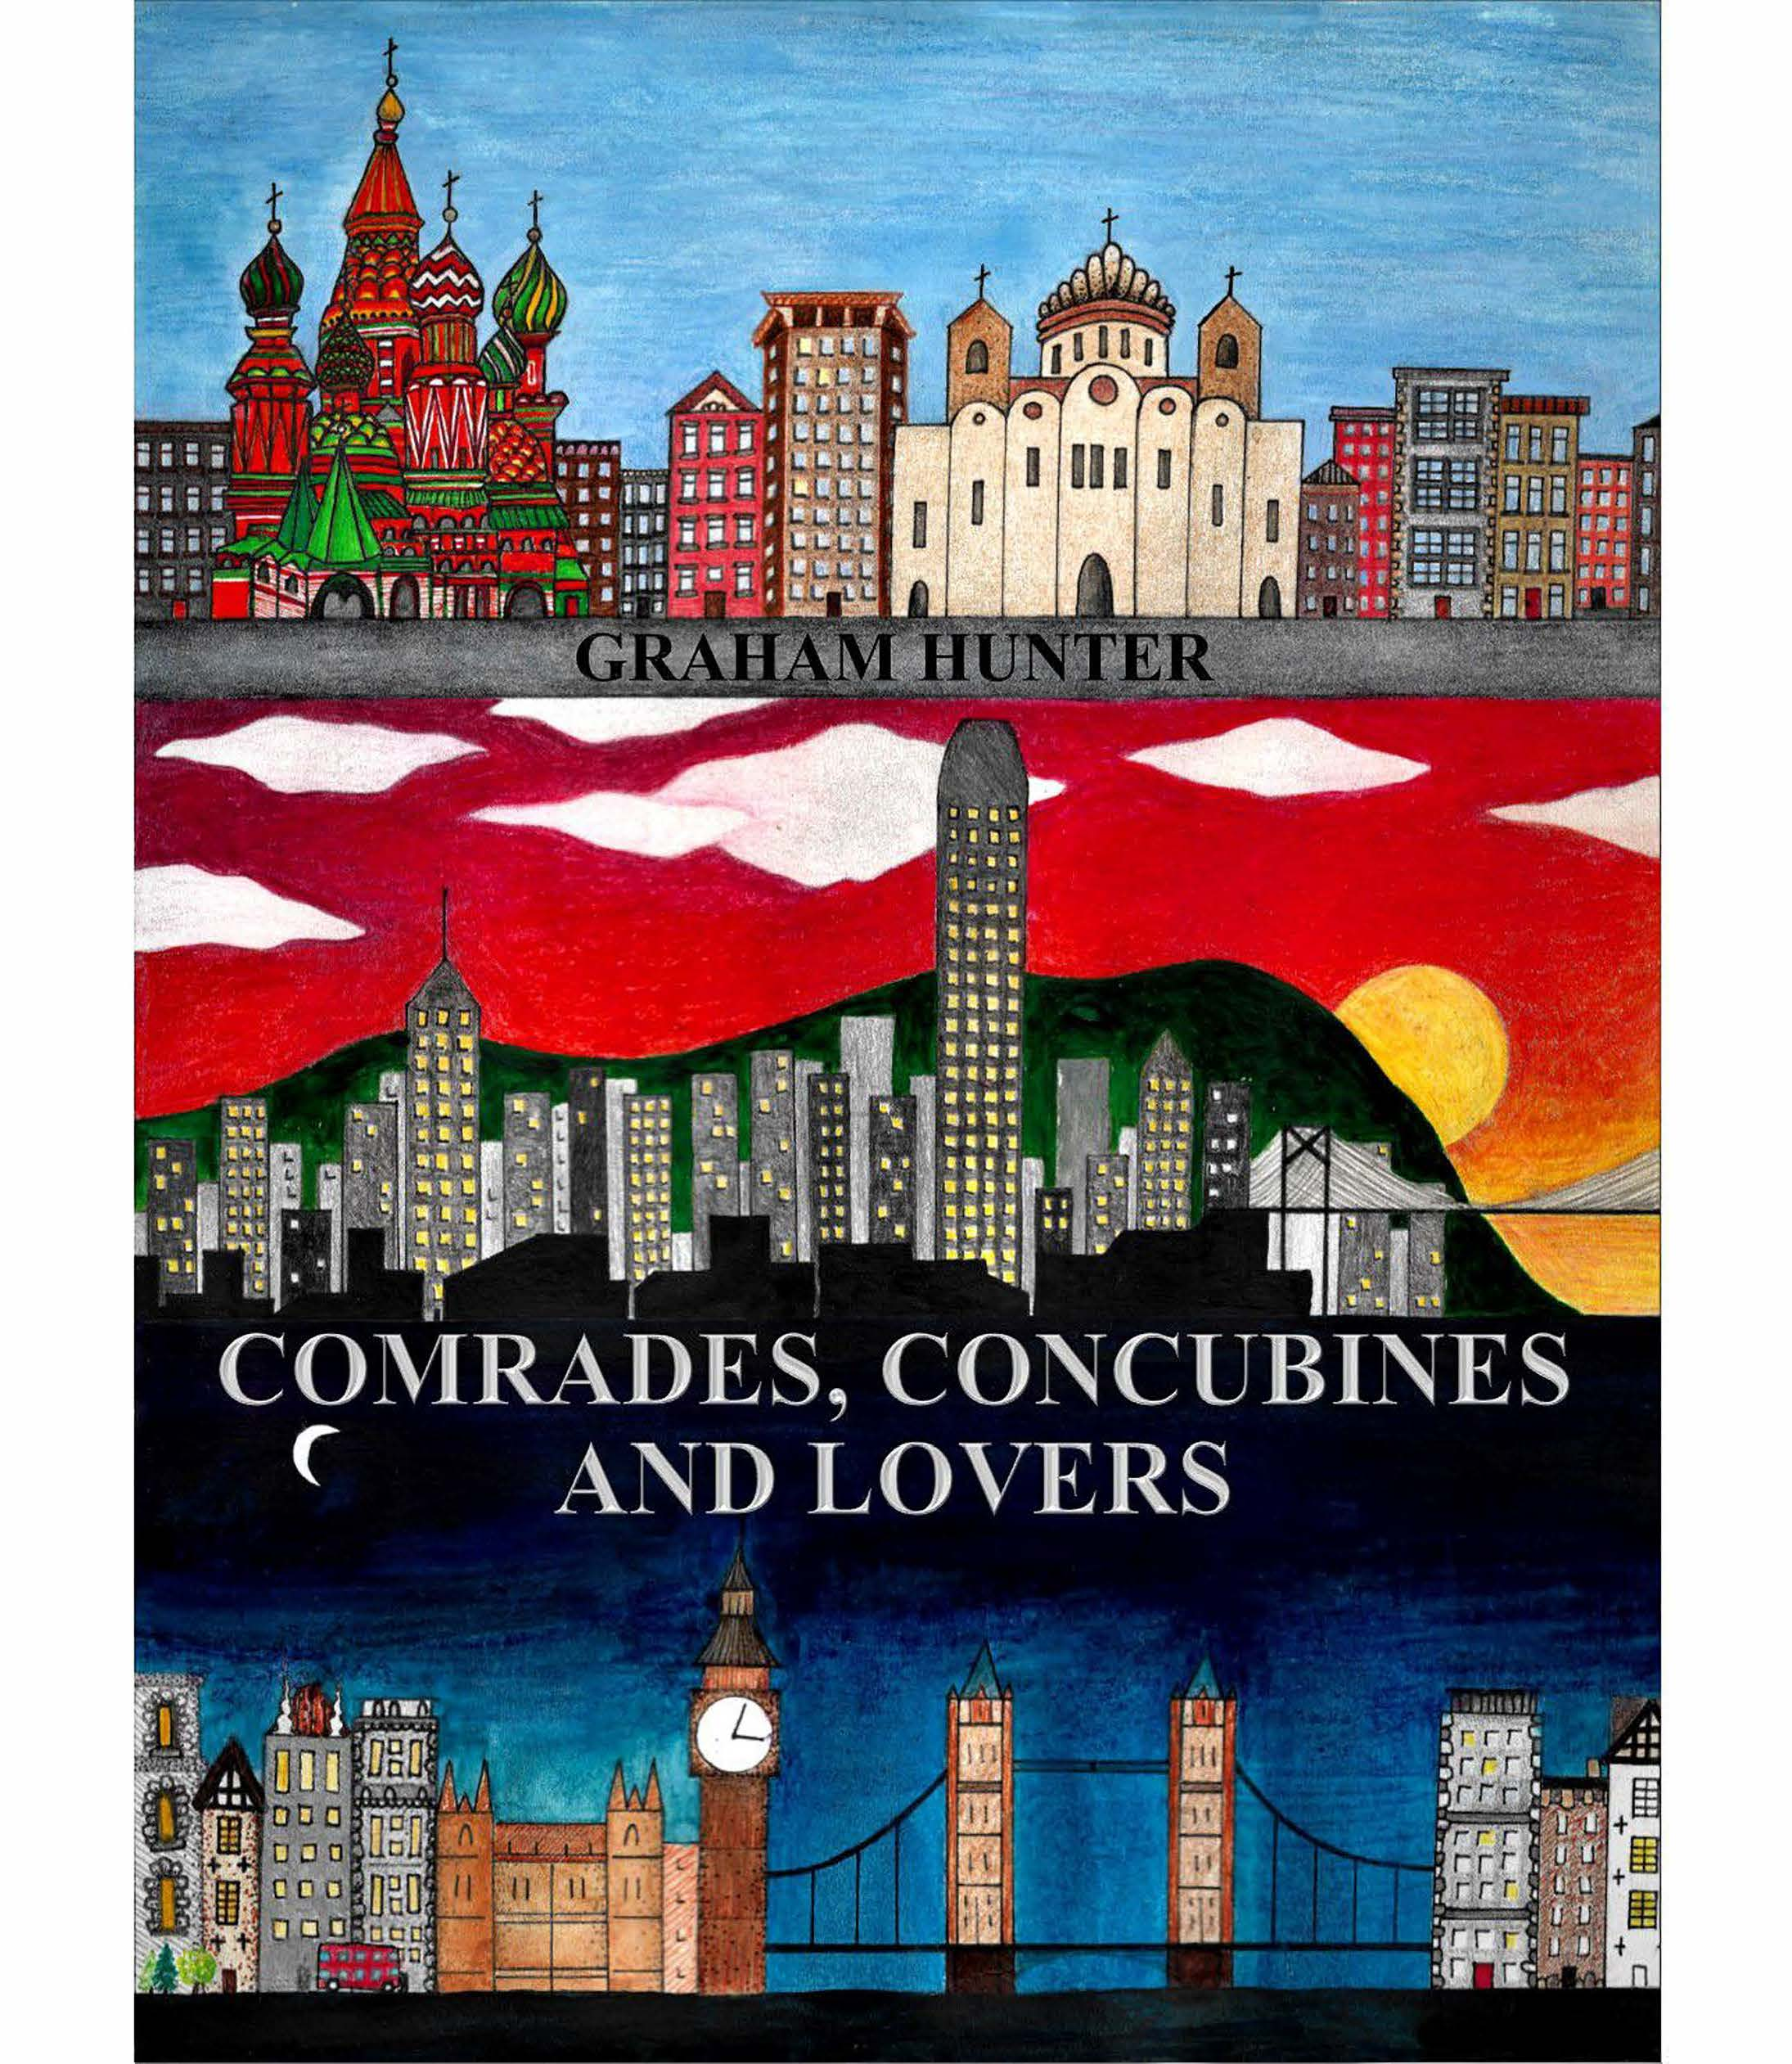 Comrades, Concubines and Lovers by Graham Hunter